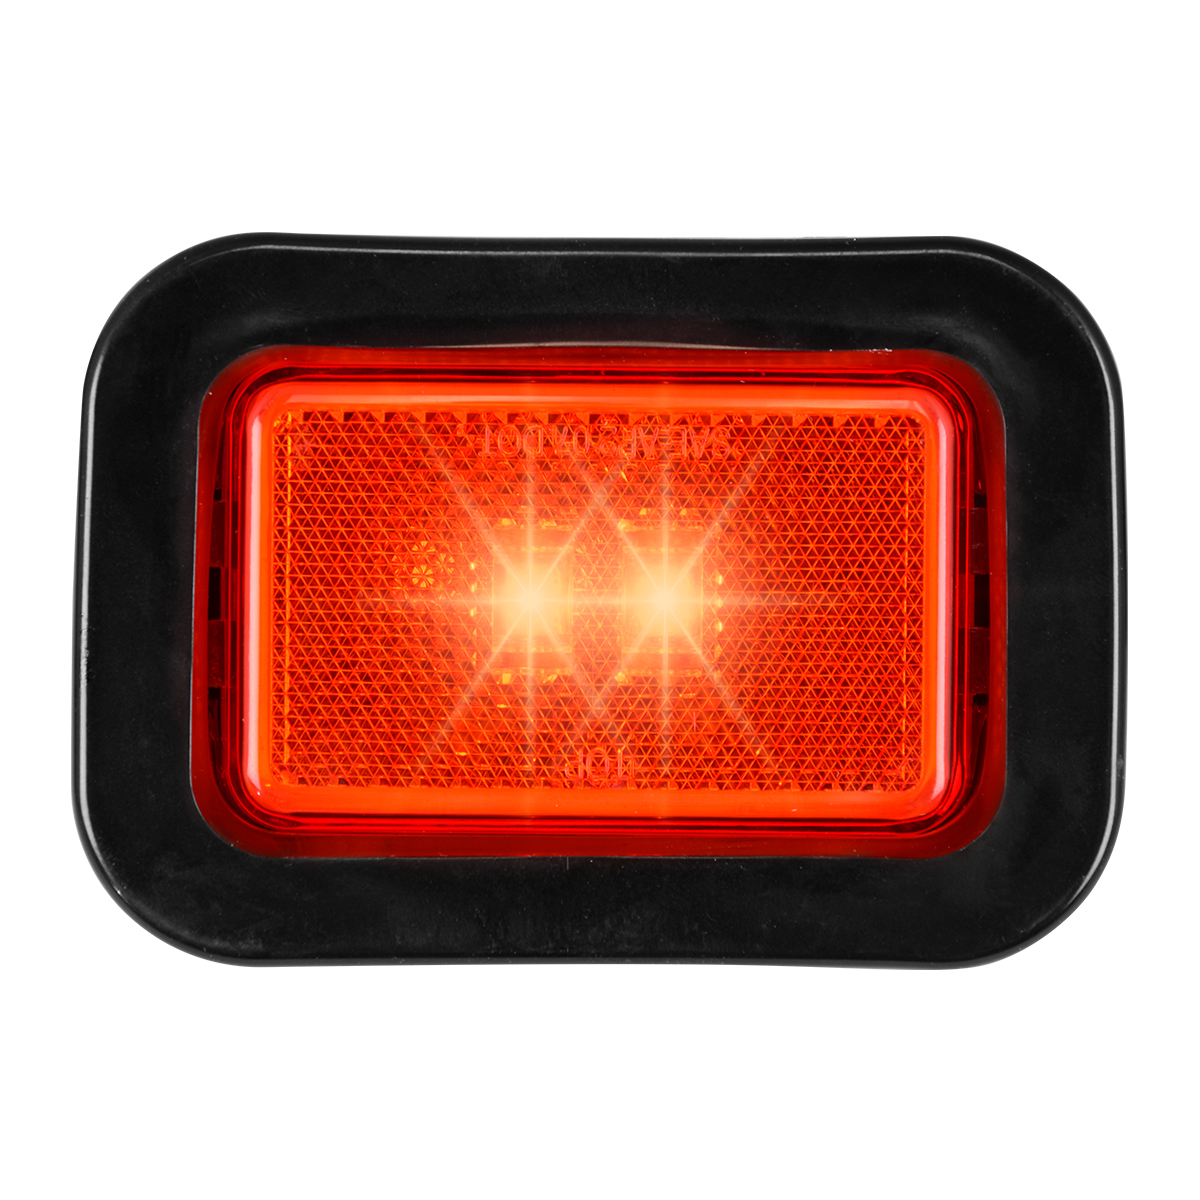 78596 Rectangular Marker LED in Reflector Lens with Grommet and Pigtail